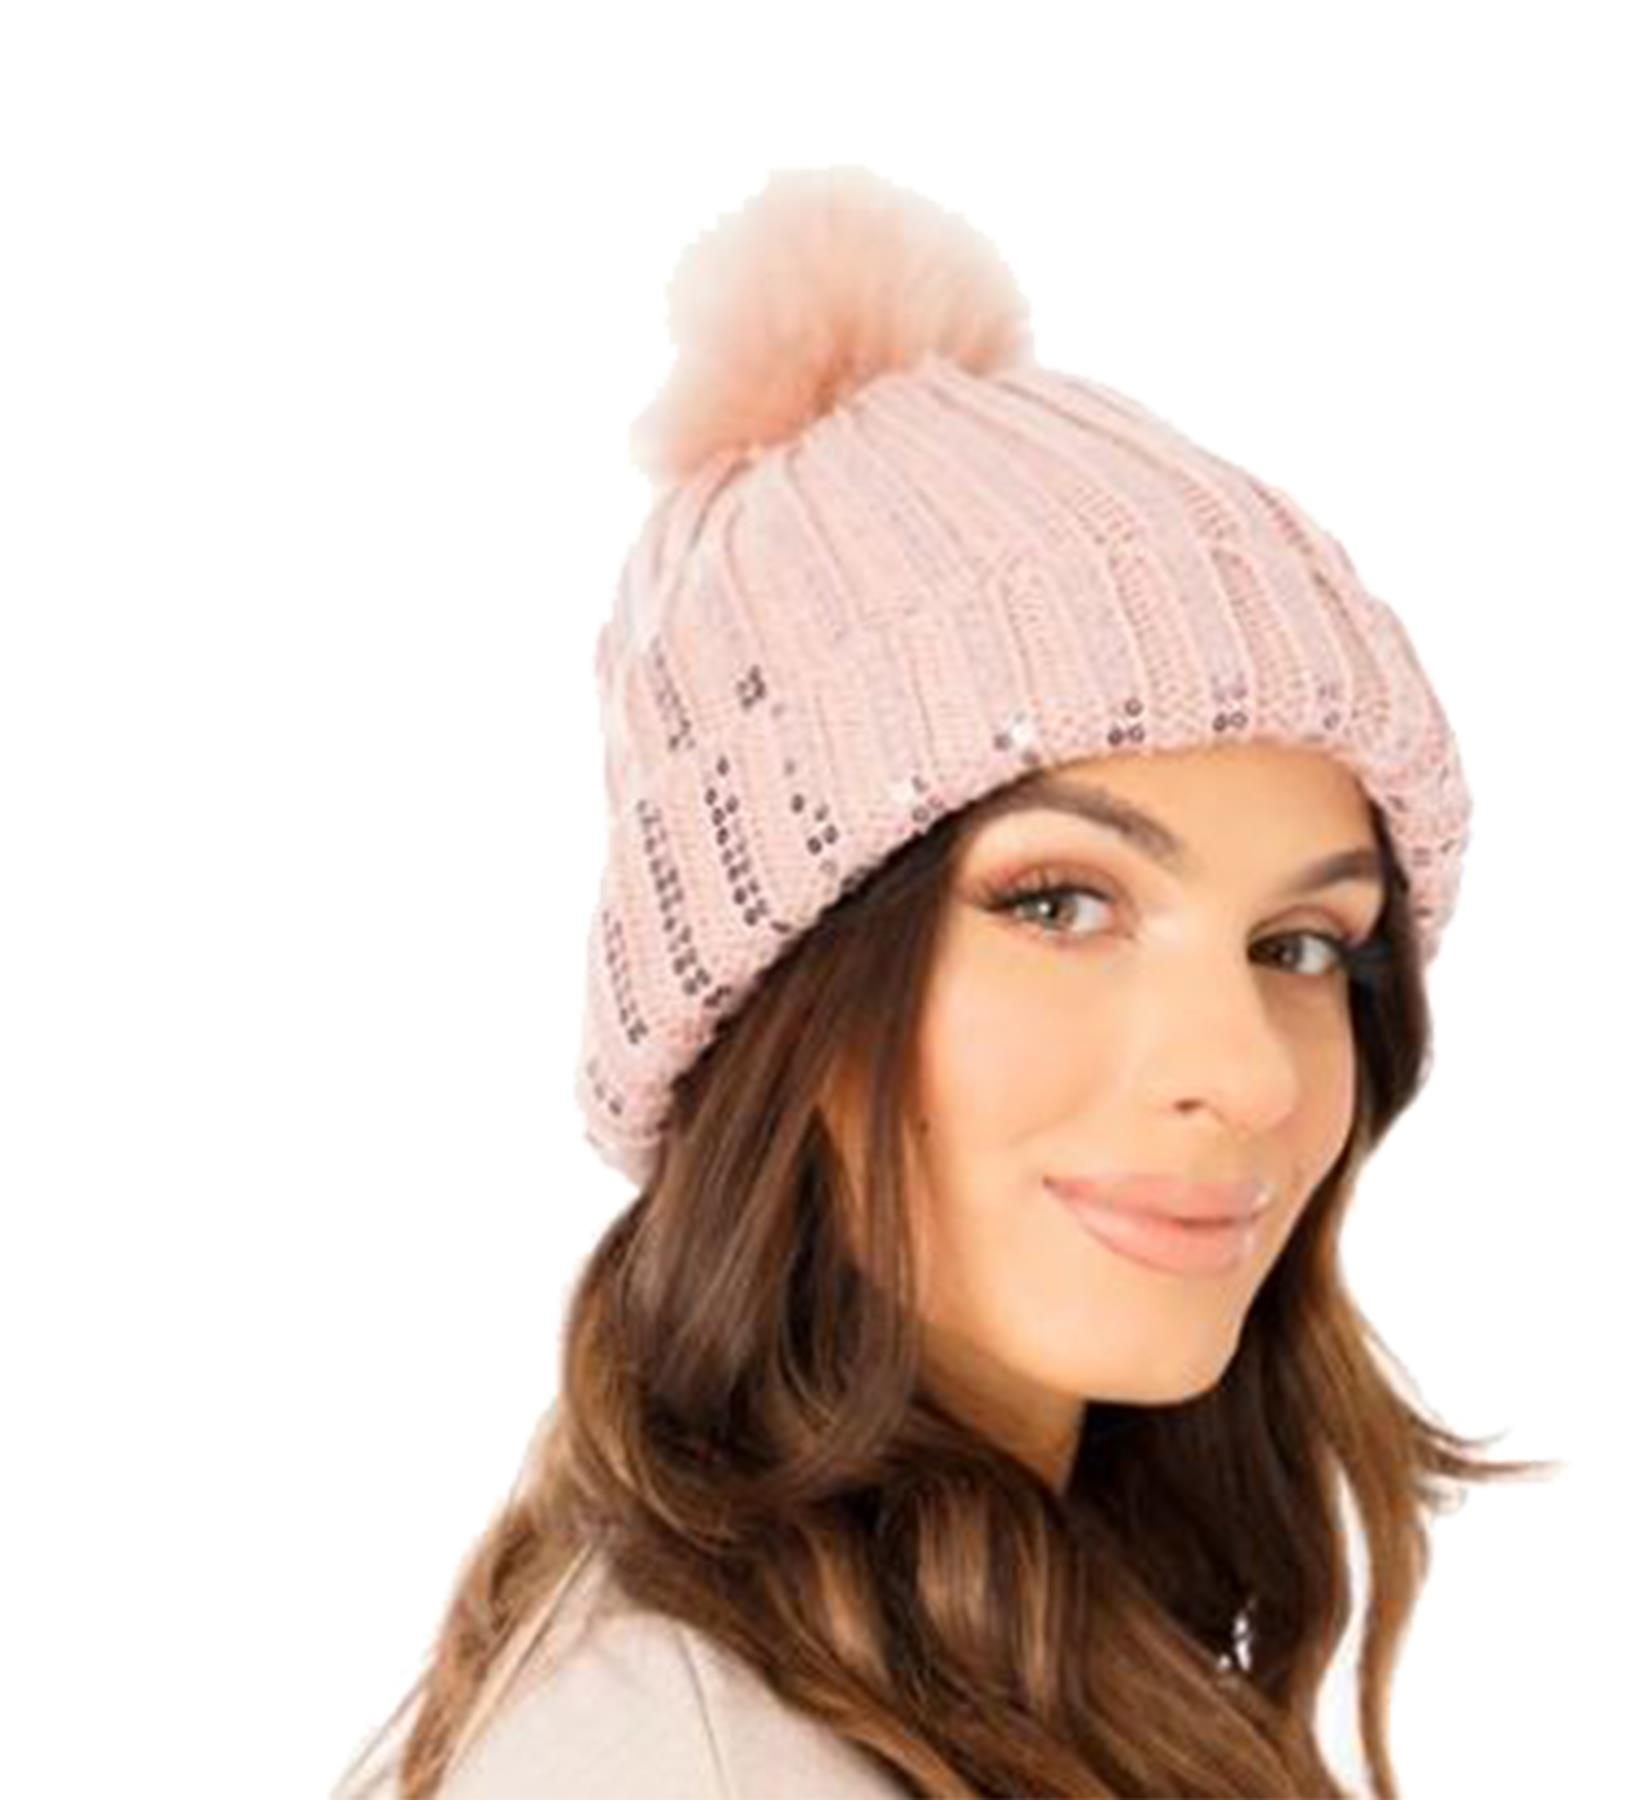 New-Ladies-Fleece-Lining-Sequins-Faux-Fur-Pom-Pom-Winter-Beanie-Hat thumbnail 9